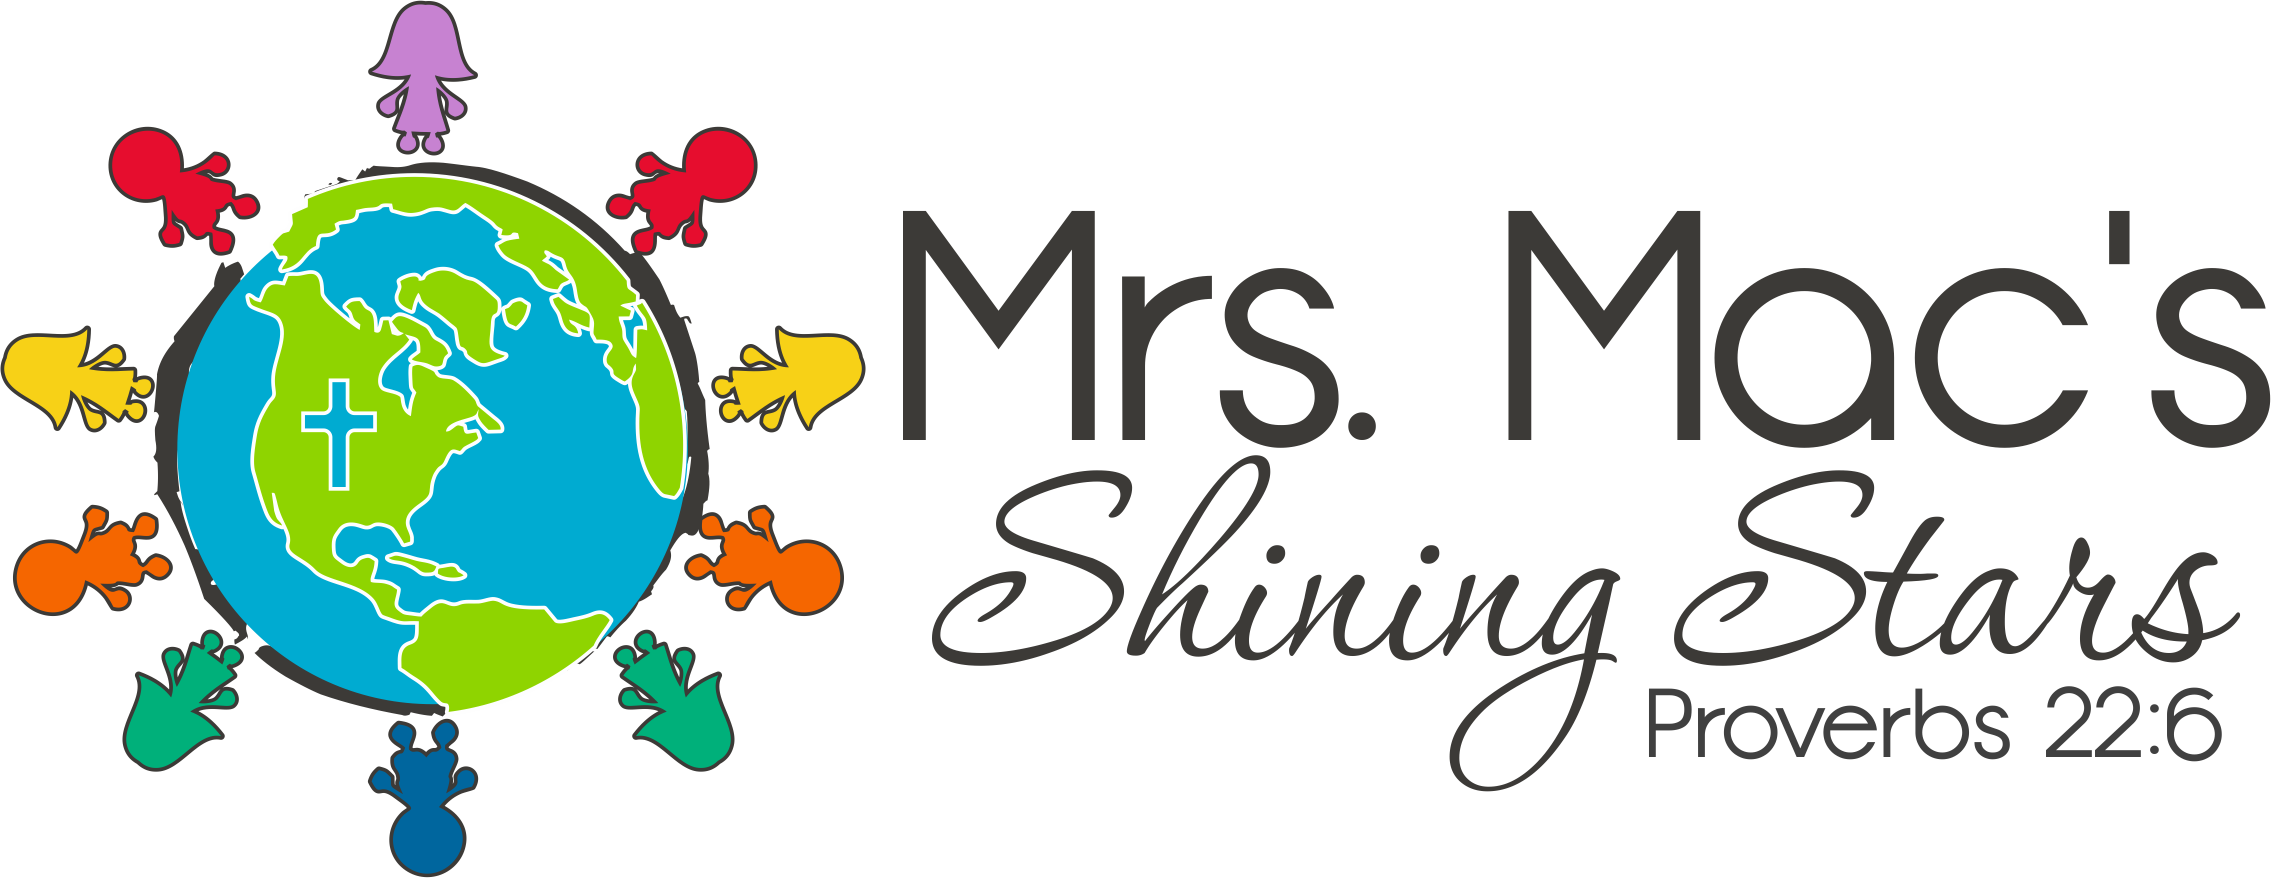 Mrs. Mac's Shining Stars